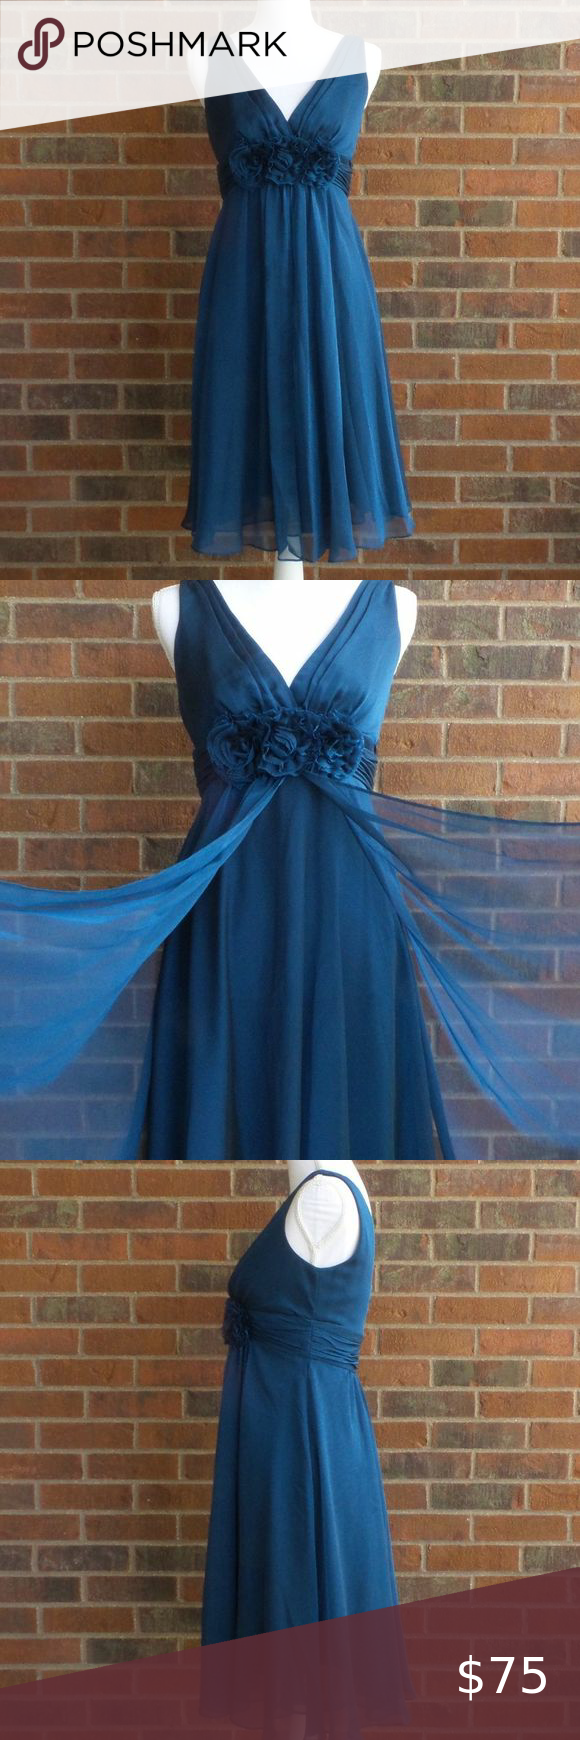 Adrianna Papell Occasions Chiffon Blue Short Dress ADRIANNA PAPELL Navy Blue Pleated Short Dress includes: Flower detail Chiffon style Special occasion collection Could be used as a bridesmaid dress Size 4 Excellent condition! Adrianna Papell Dresses Wedding